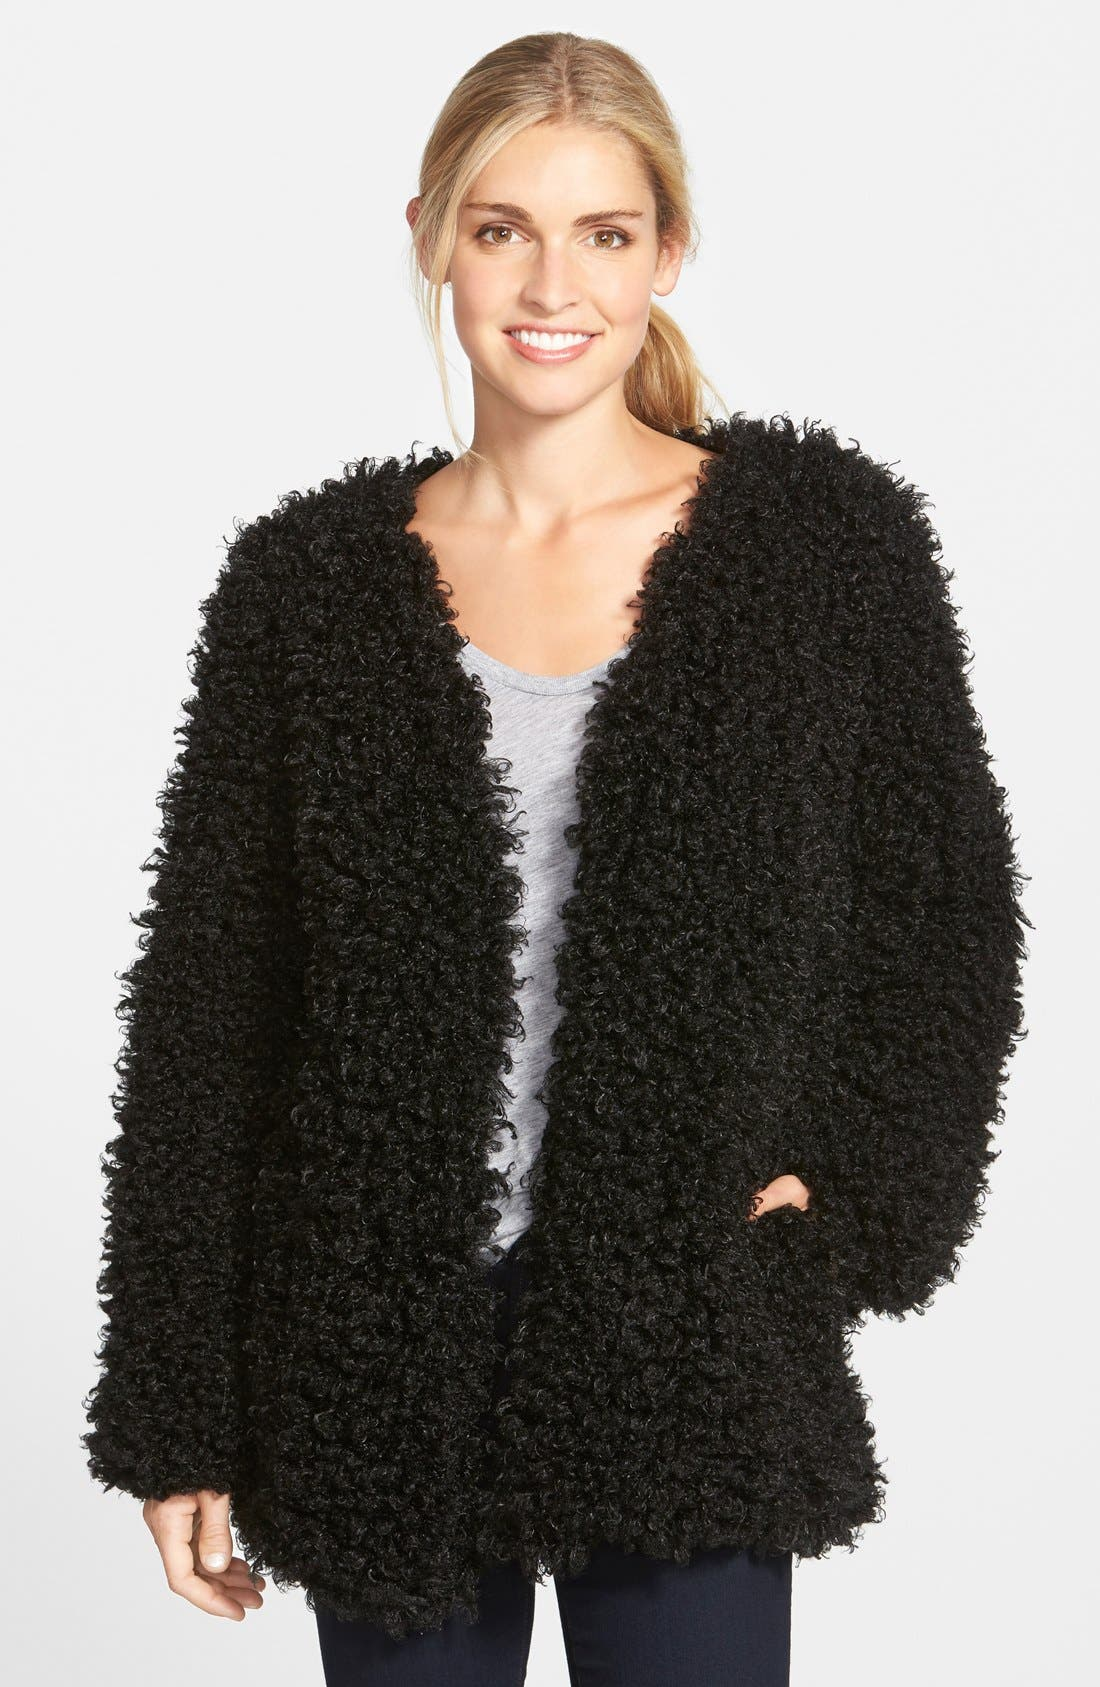 Alternate Image 1 Selected - Vince Camuto Curly Faux Fur Jacket